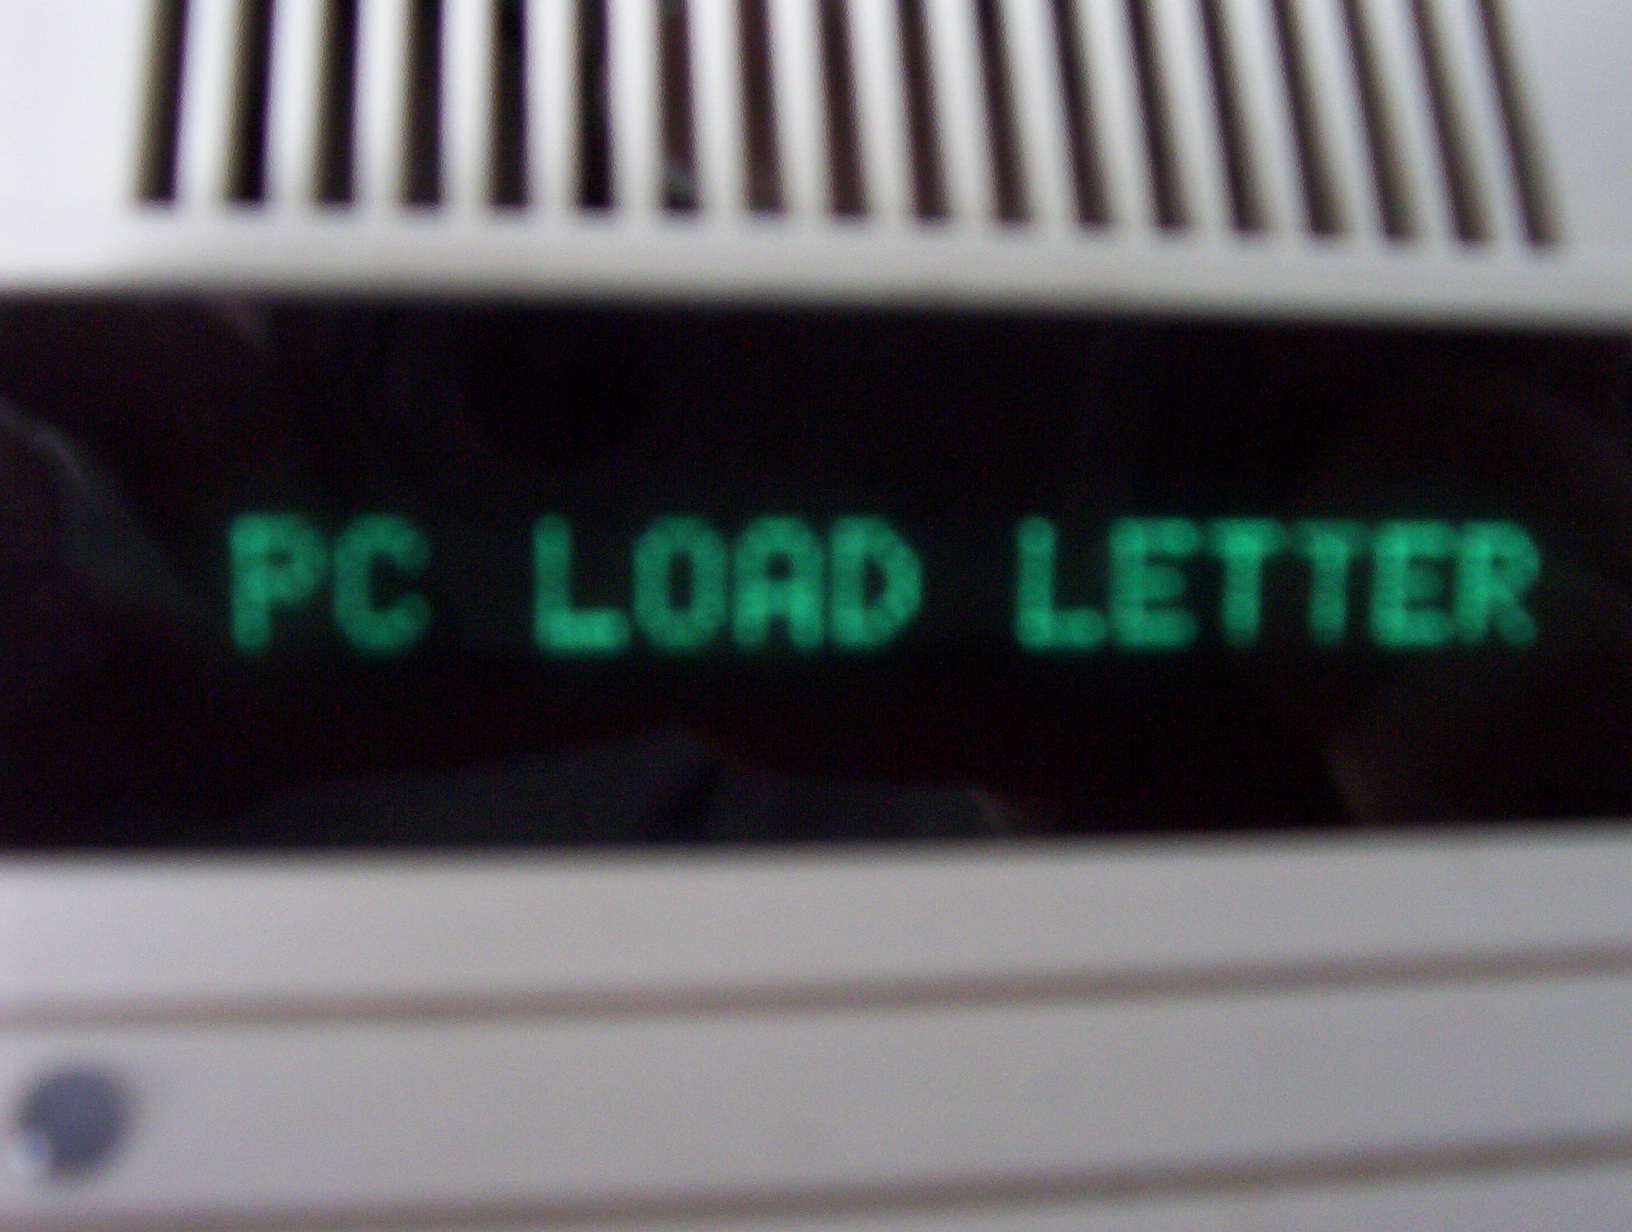 Office Space pc Load Letter That Said Quot pc Load Letter